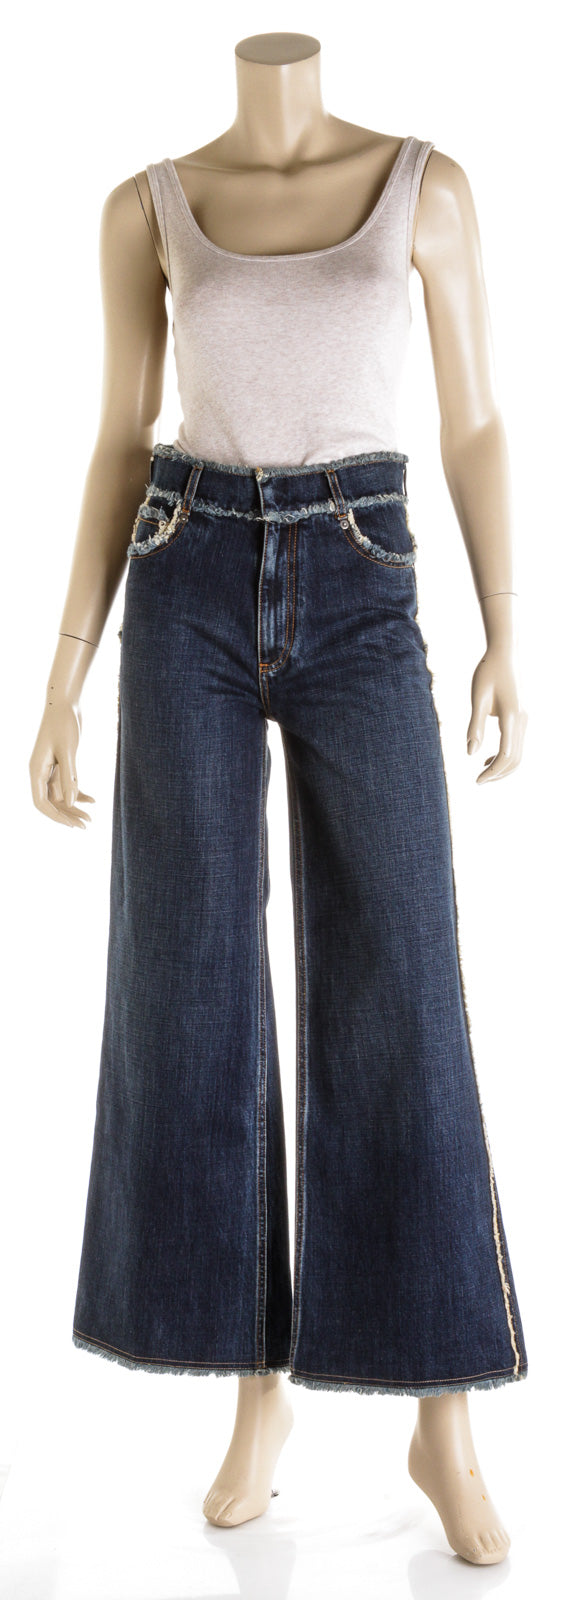 Christian Dior Blue Wide Leg Denim Jeans (Size 34)